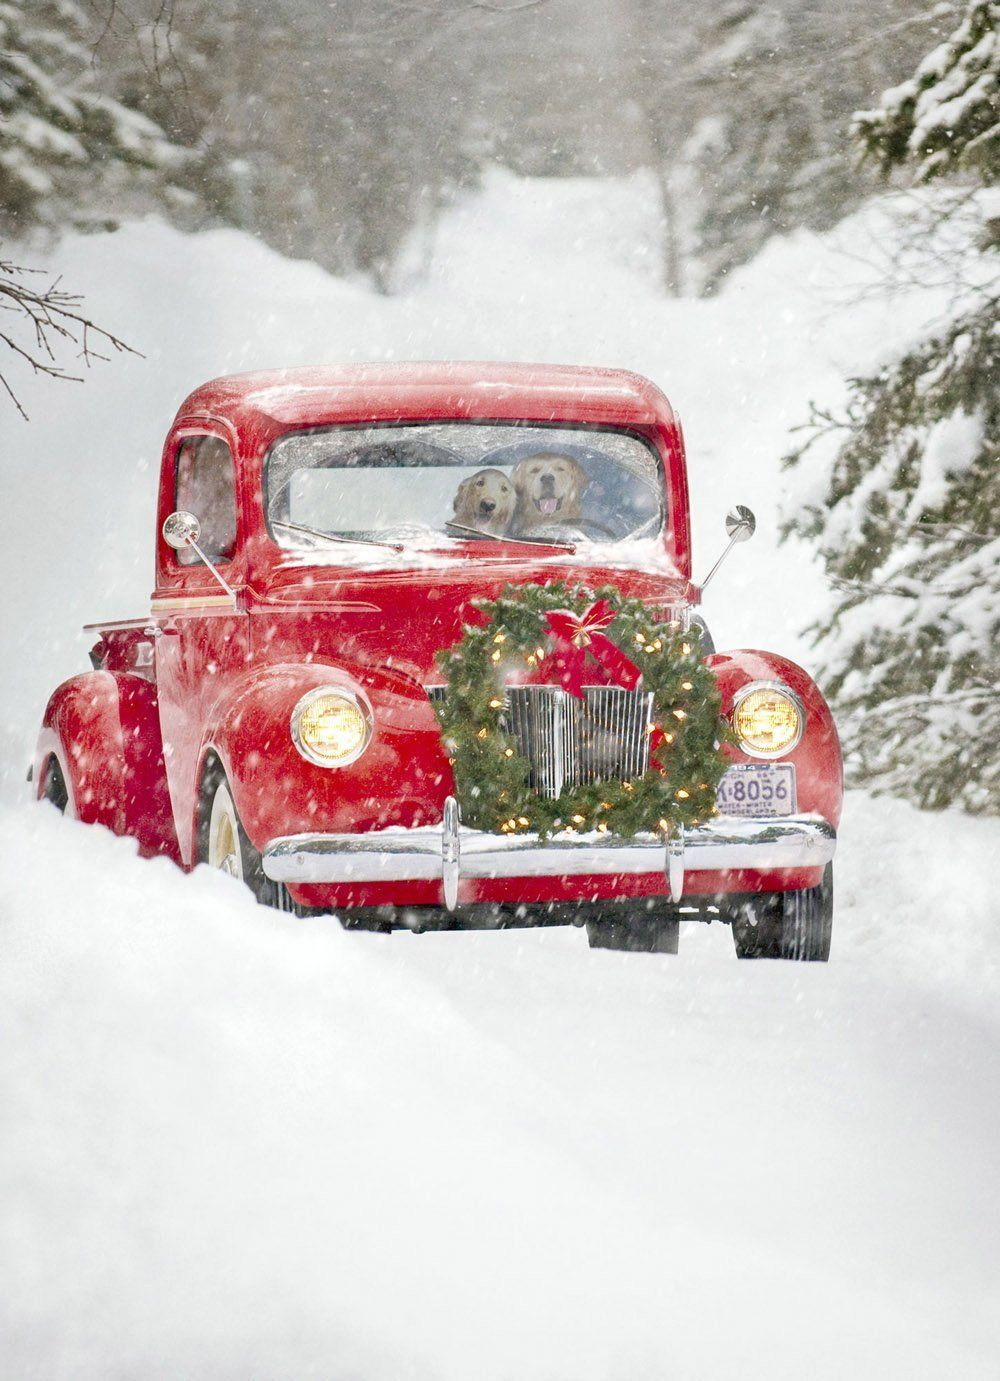 Amazon.com : Avanti Christmas Cards, Old Fashioned Truck, 10 Count ...